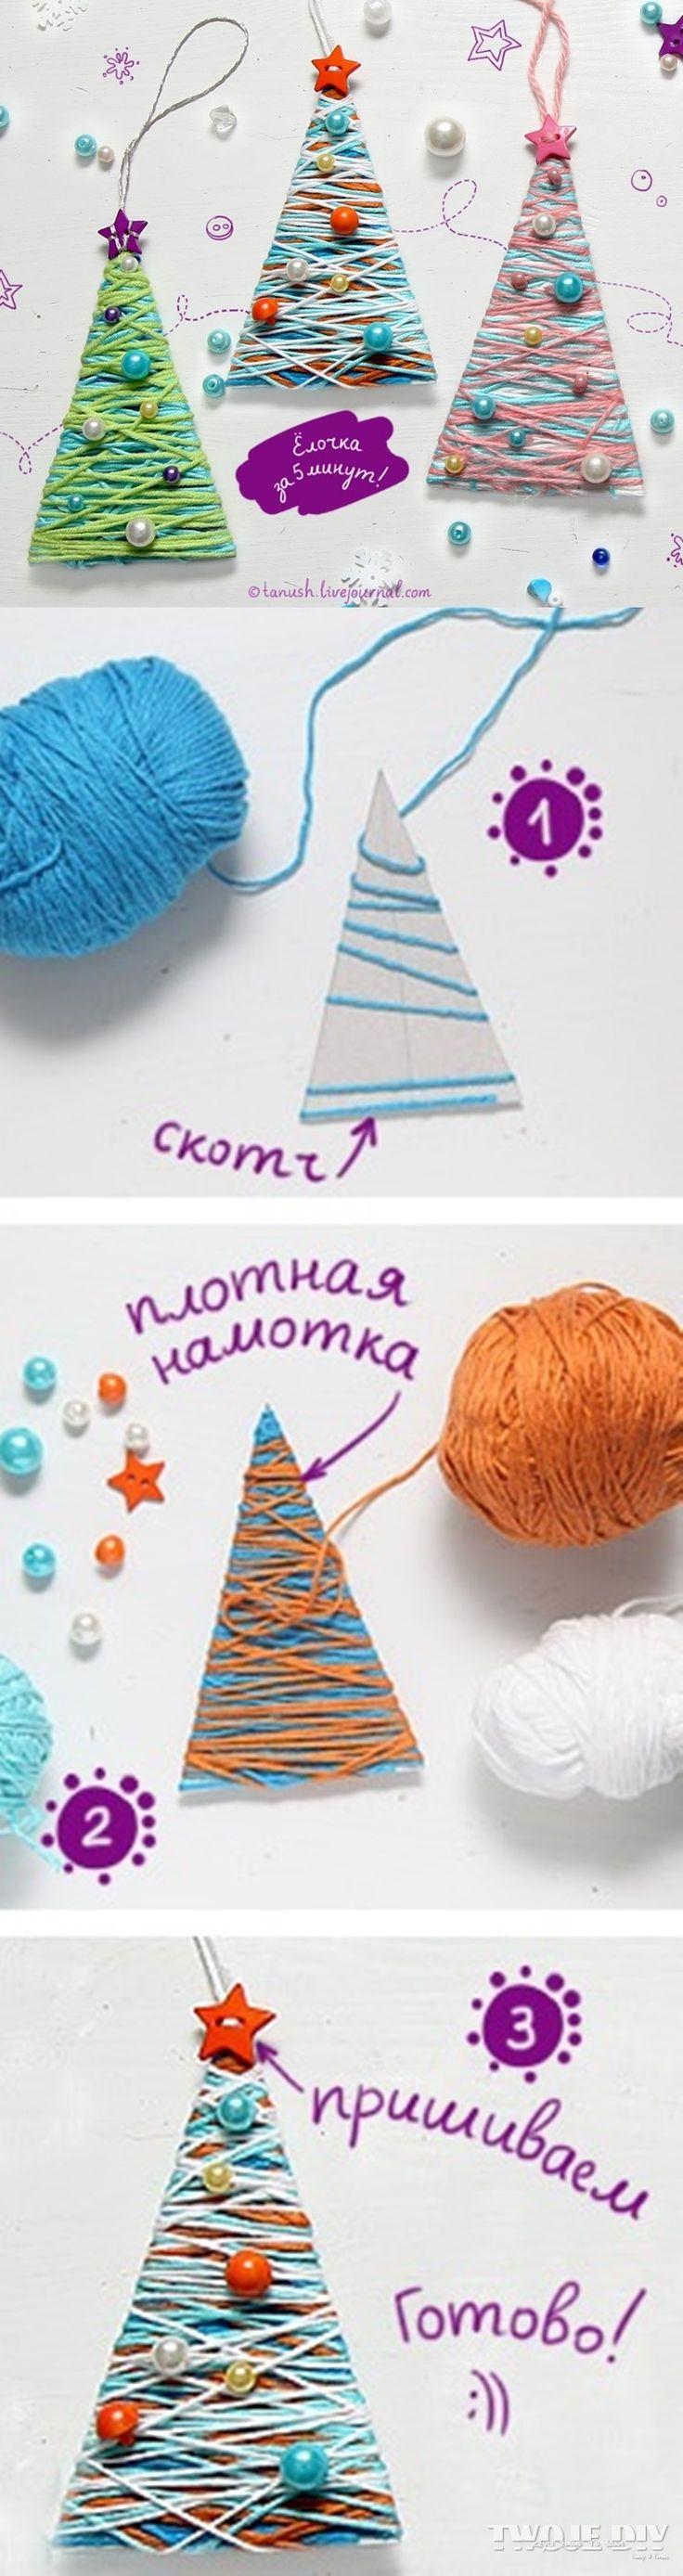 Best DIY Christmas Tree Ideas